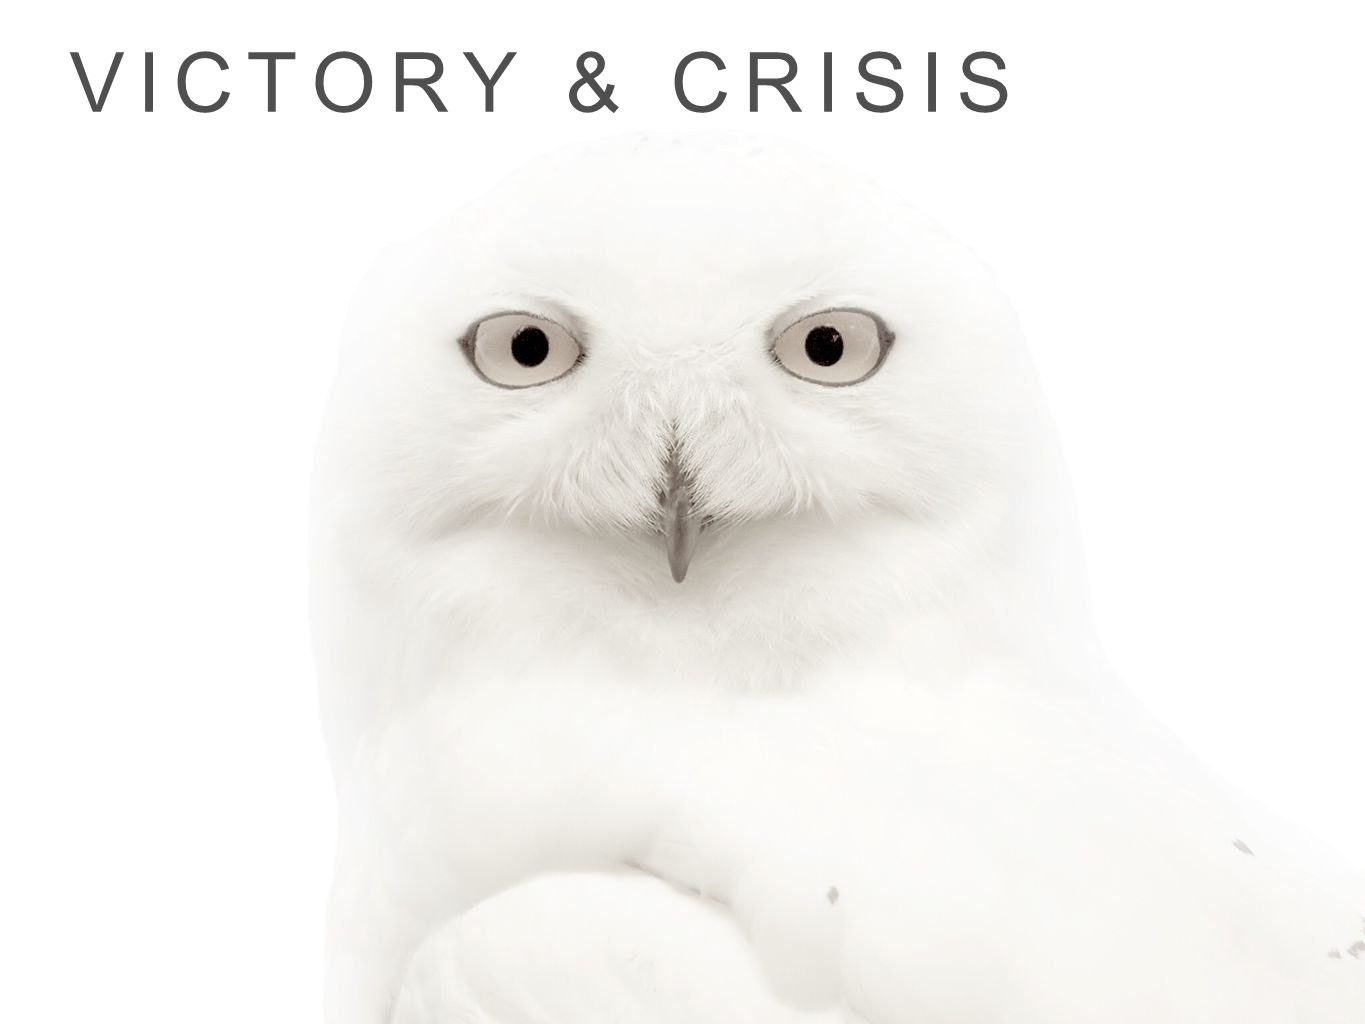 Victory & crisis